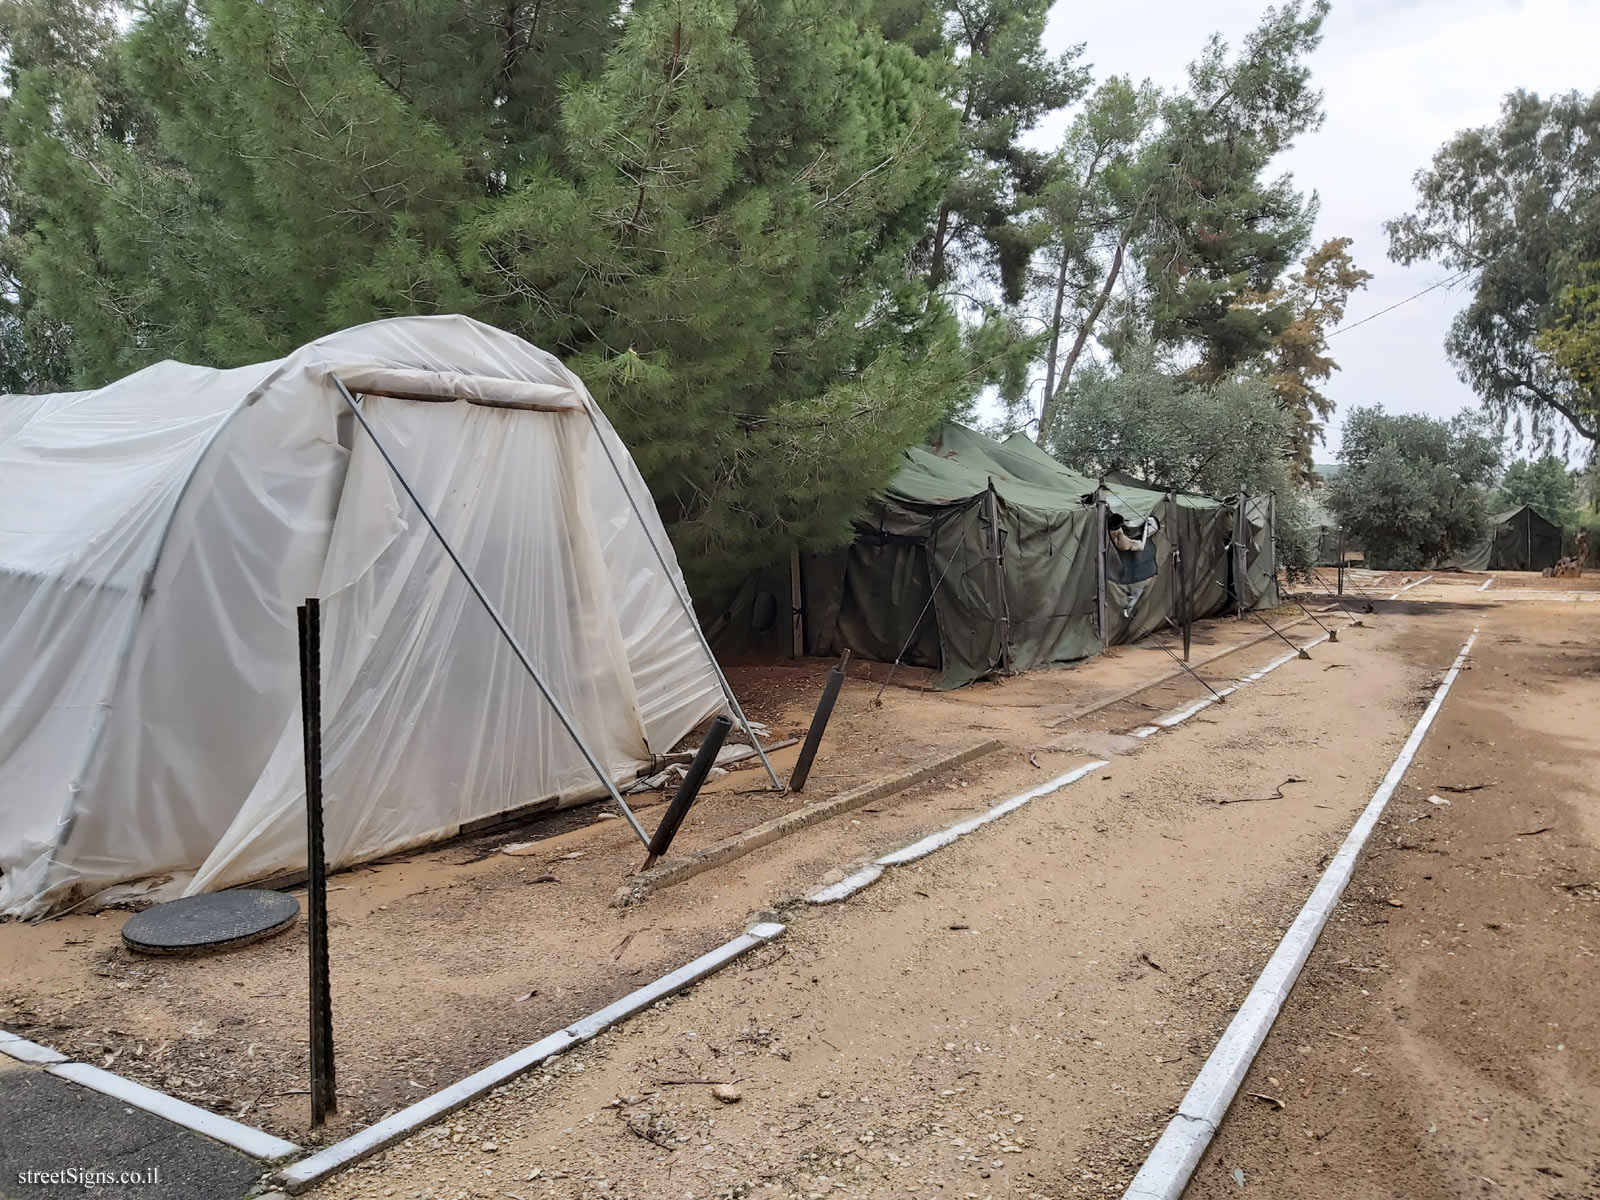 Rehovot - Heritage Sites in Israel - Ayalon Institute - The tent camp - David Fikes St 1, Rehovot, Israel